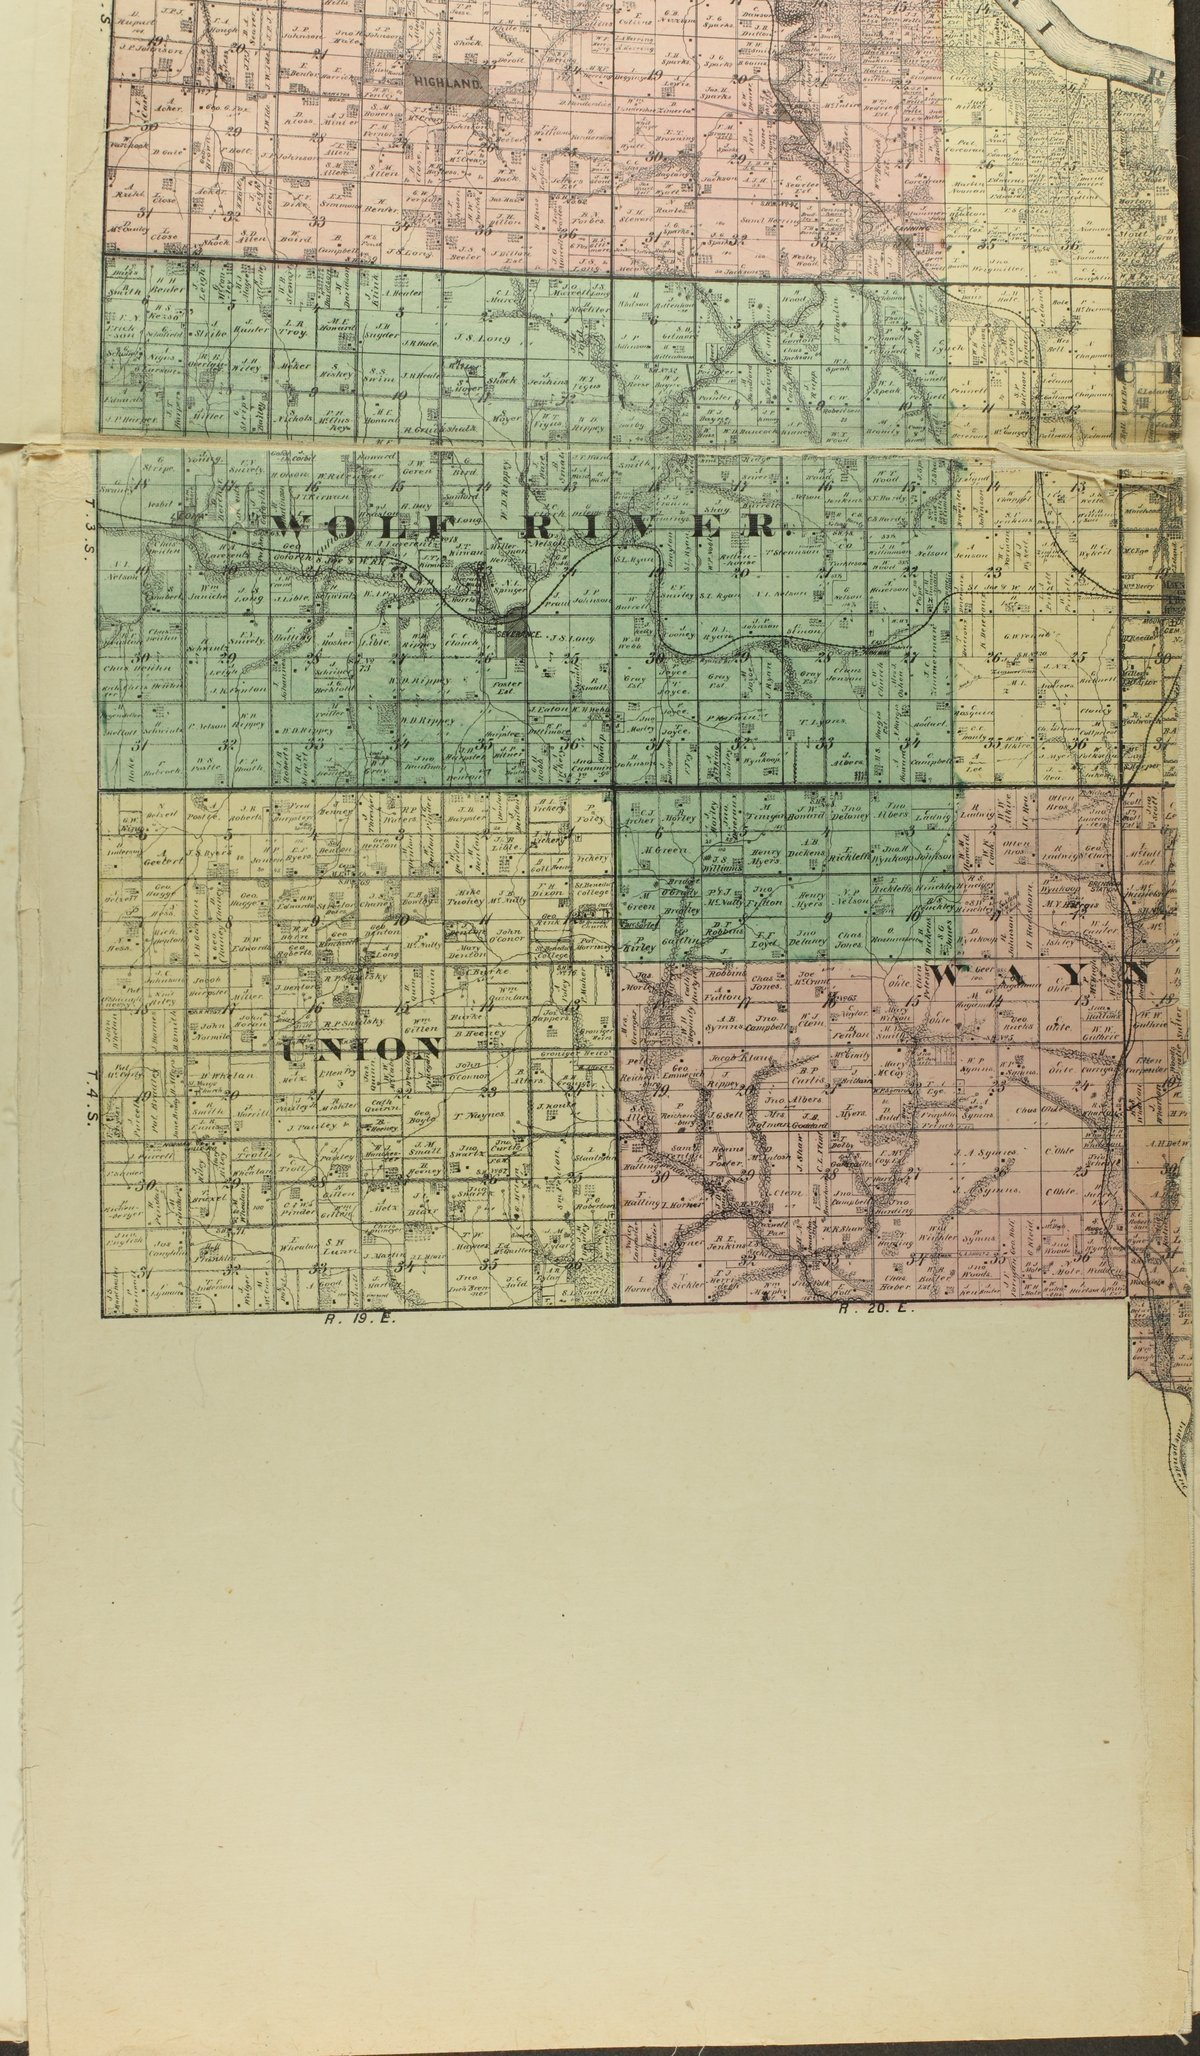 Historical plat book of Doniphan County, Kansas - Map of Doniphan Co (b)